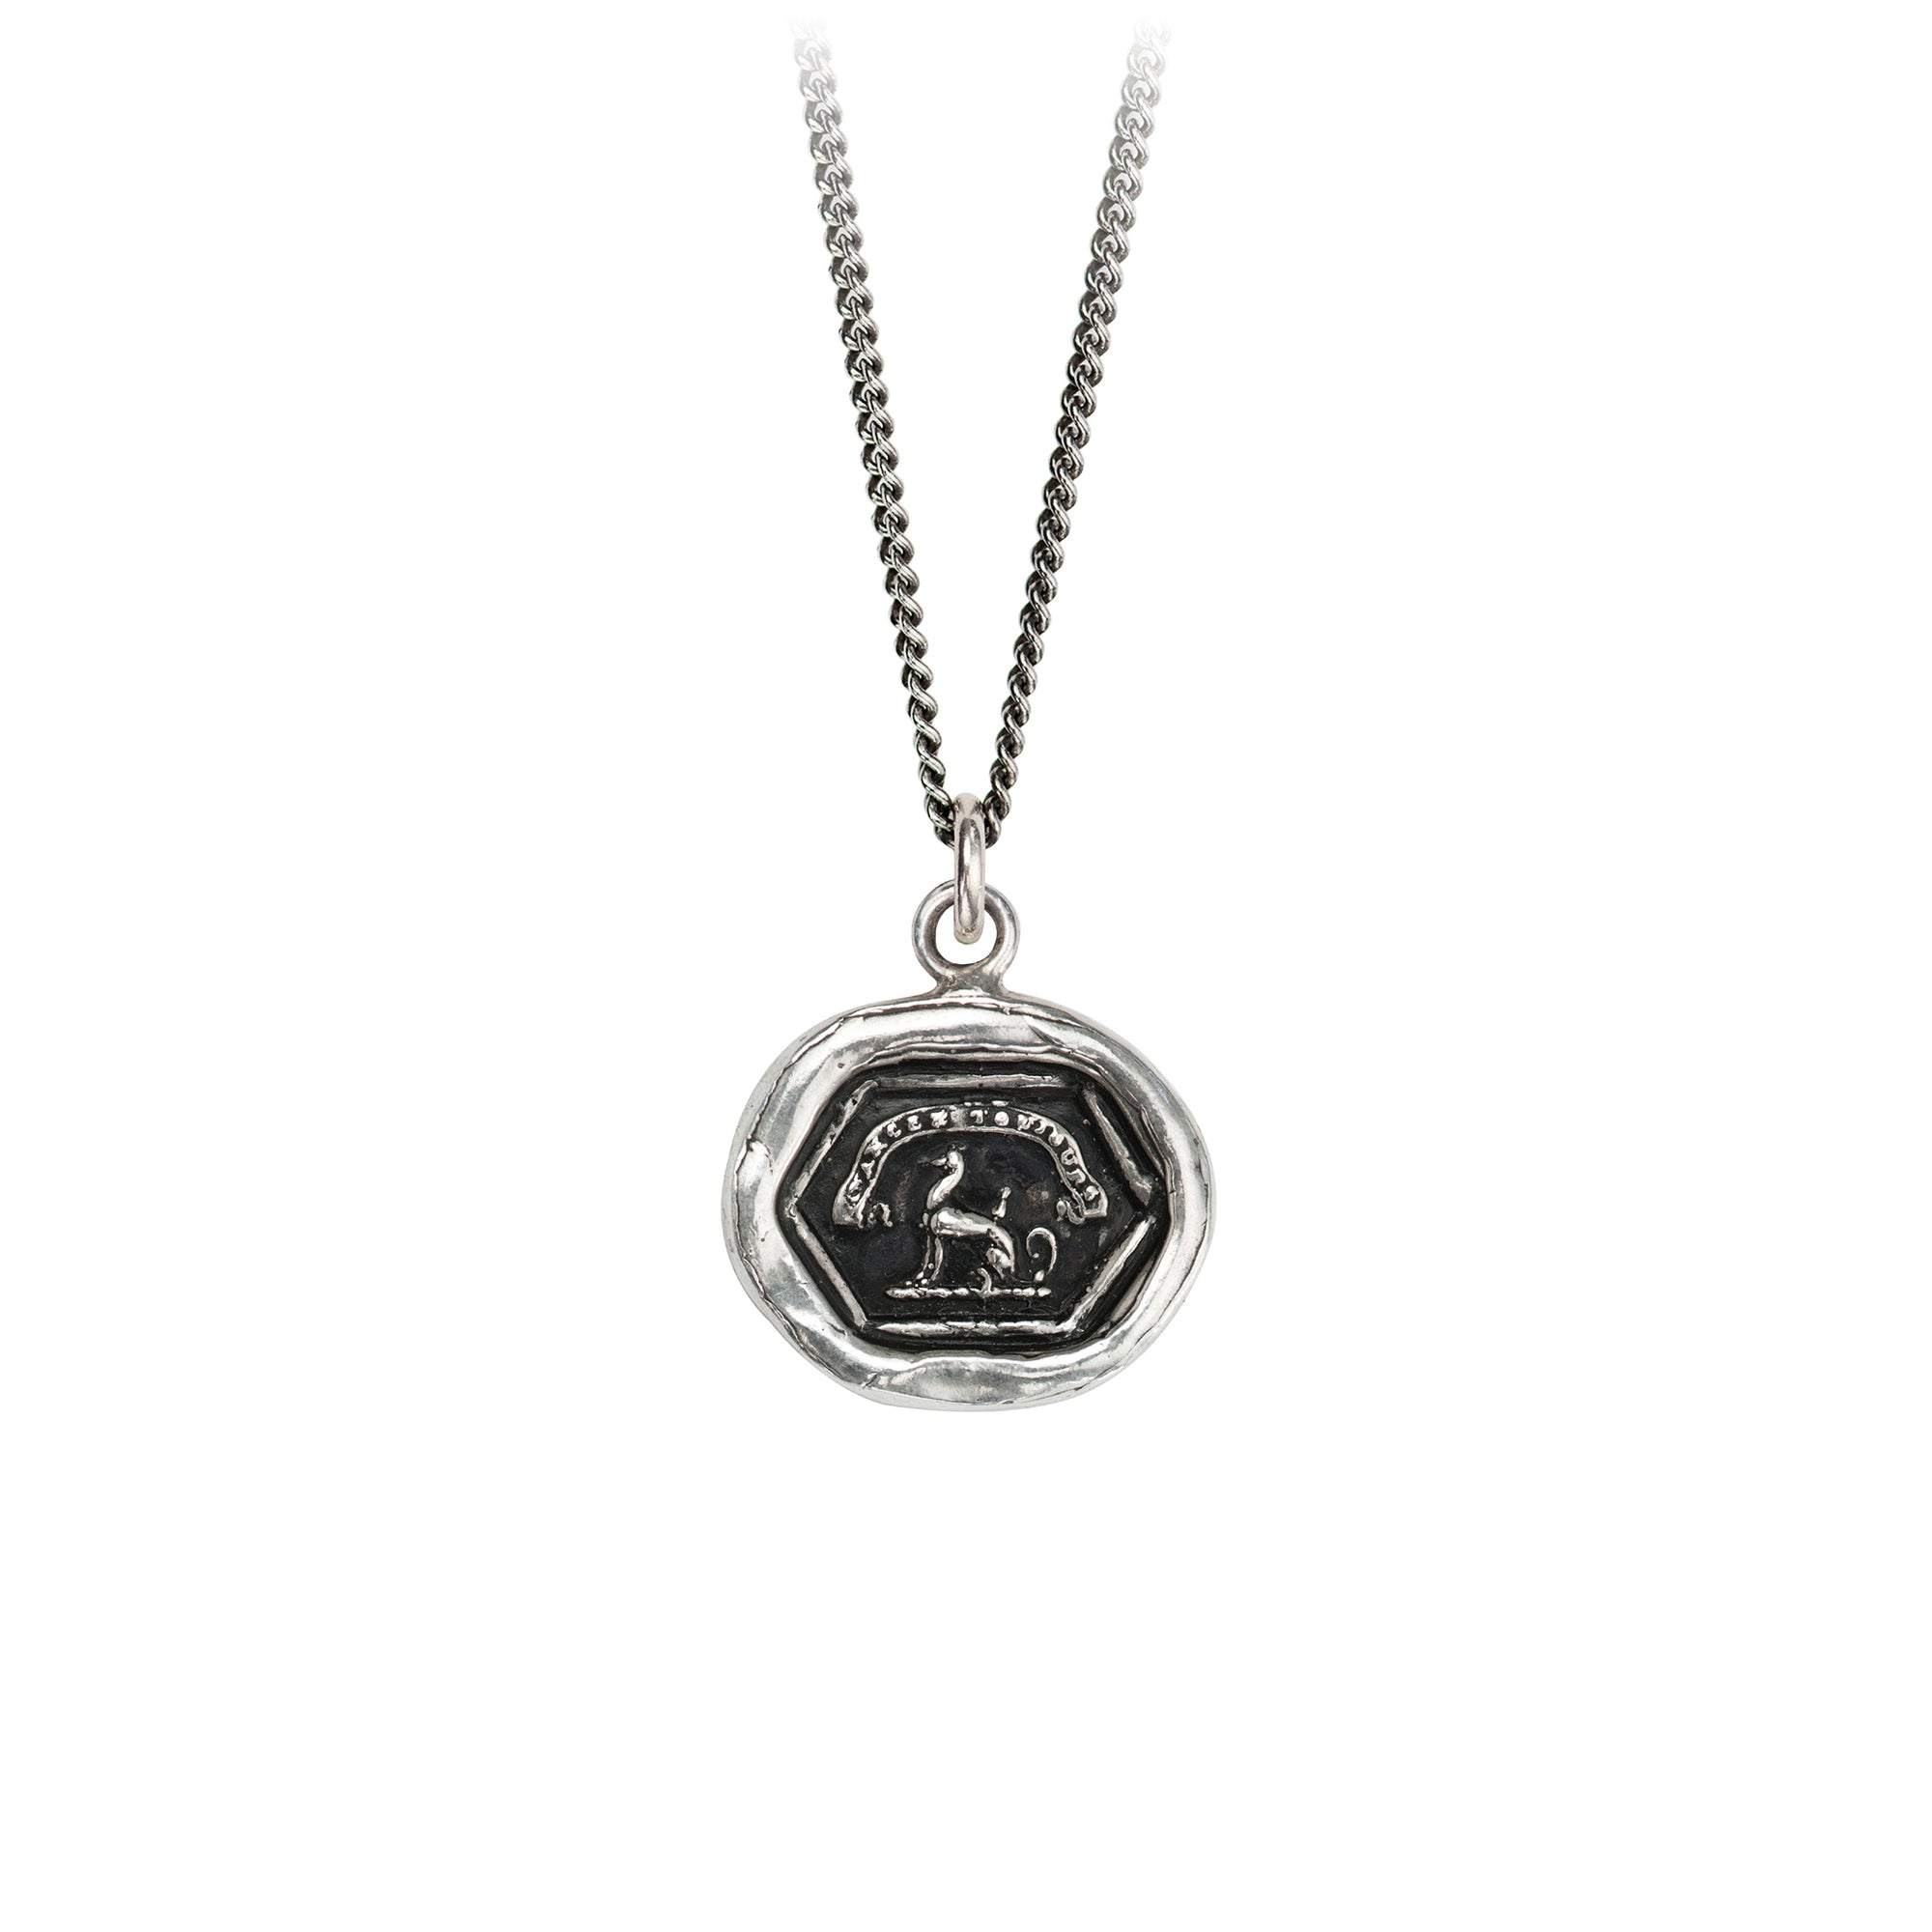 Pyrrha Aim High Talisman Necklace Fine Curb Chain Silver